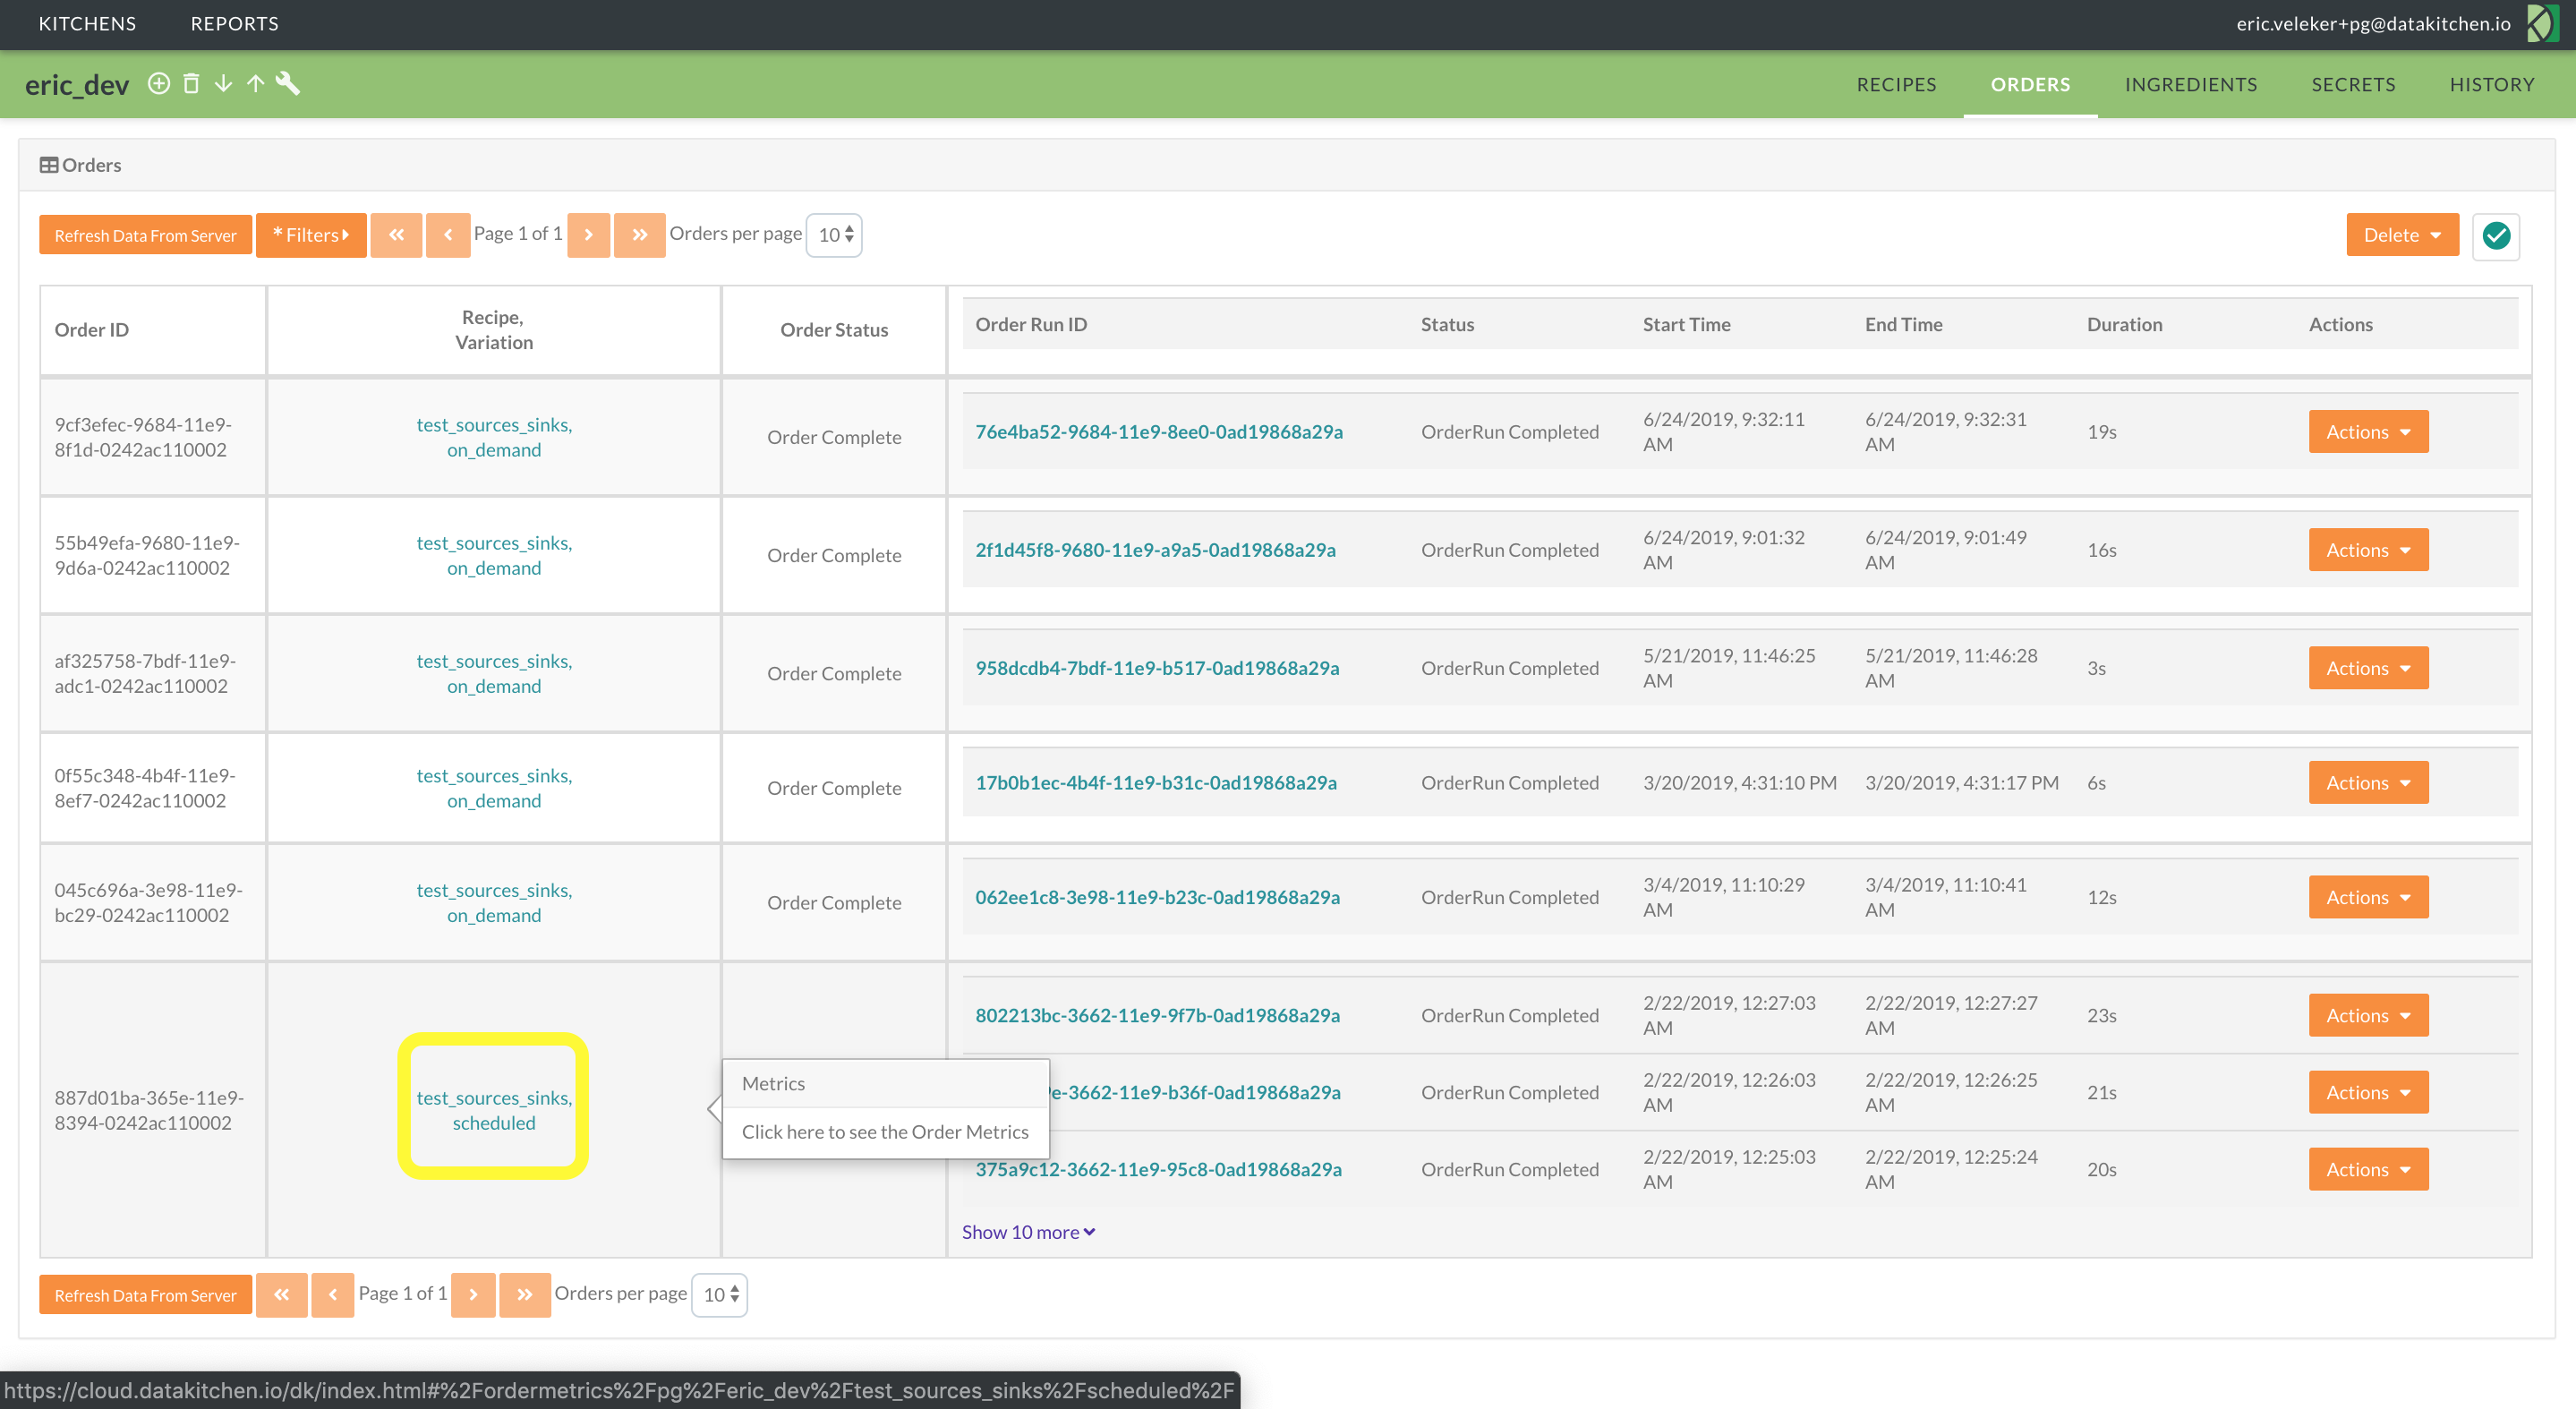 Access a longitudinal view of metadata across order runs from the Orders page.